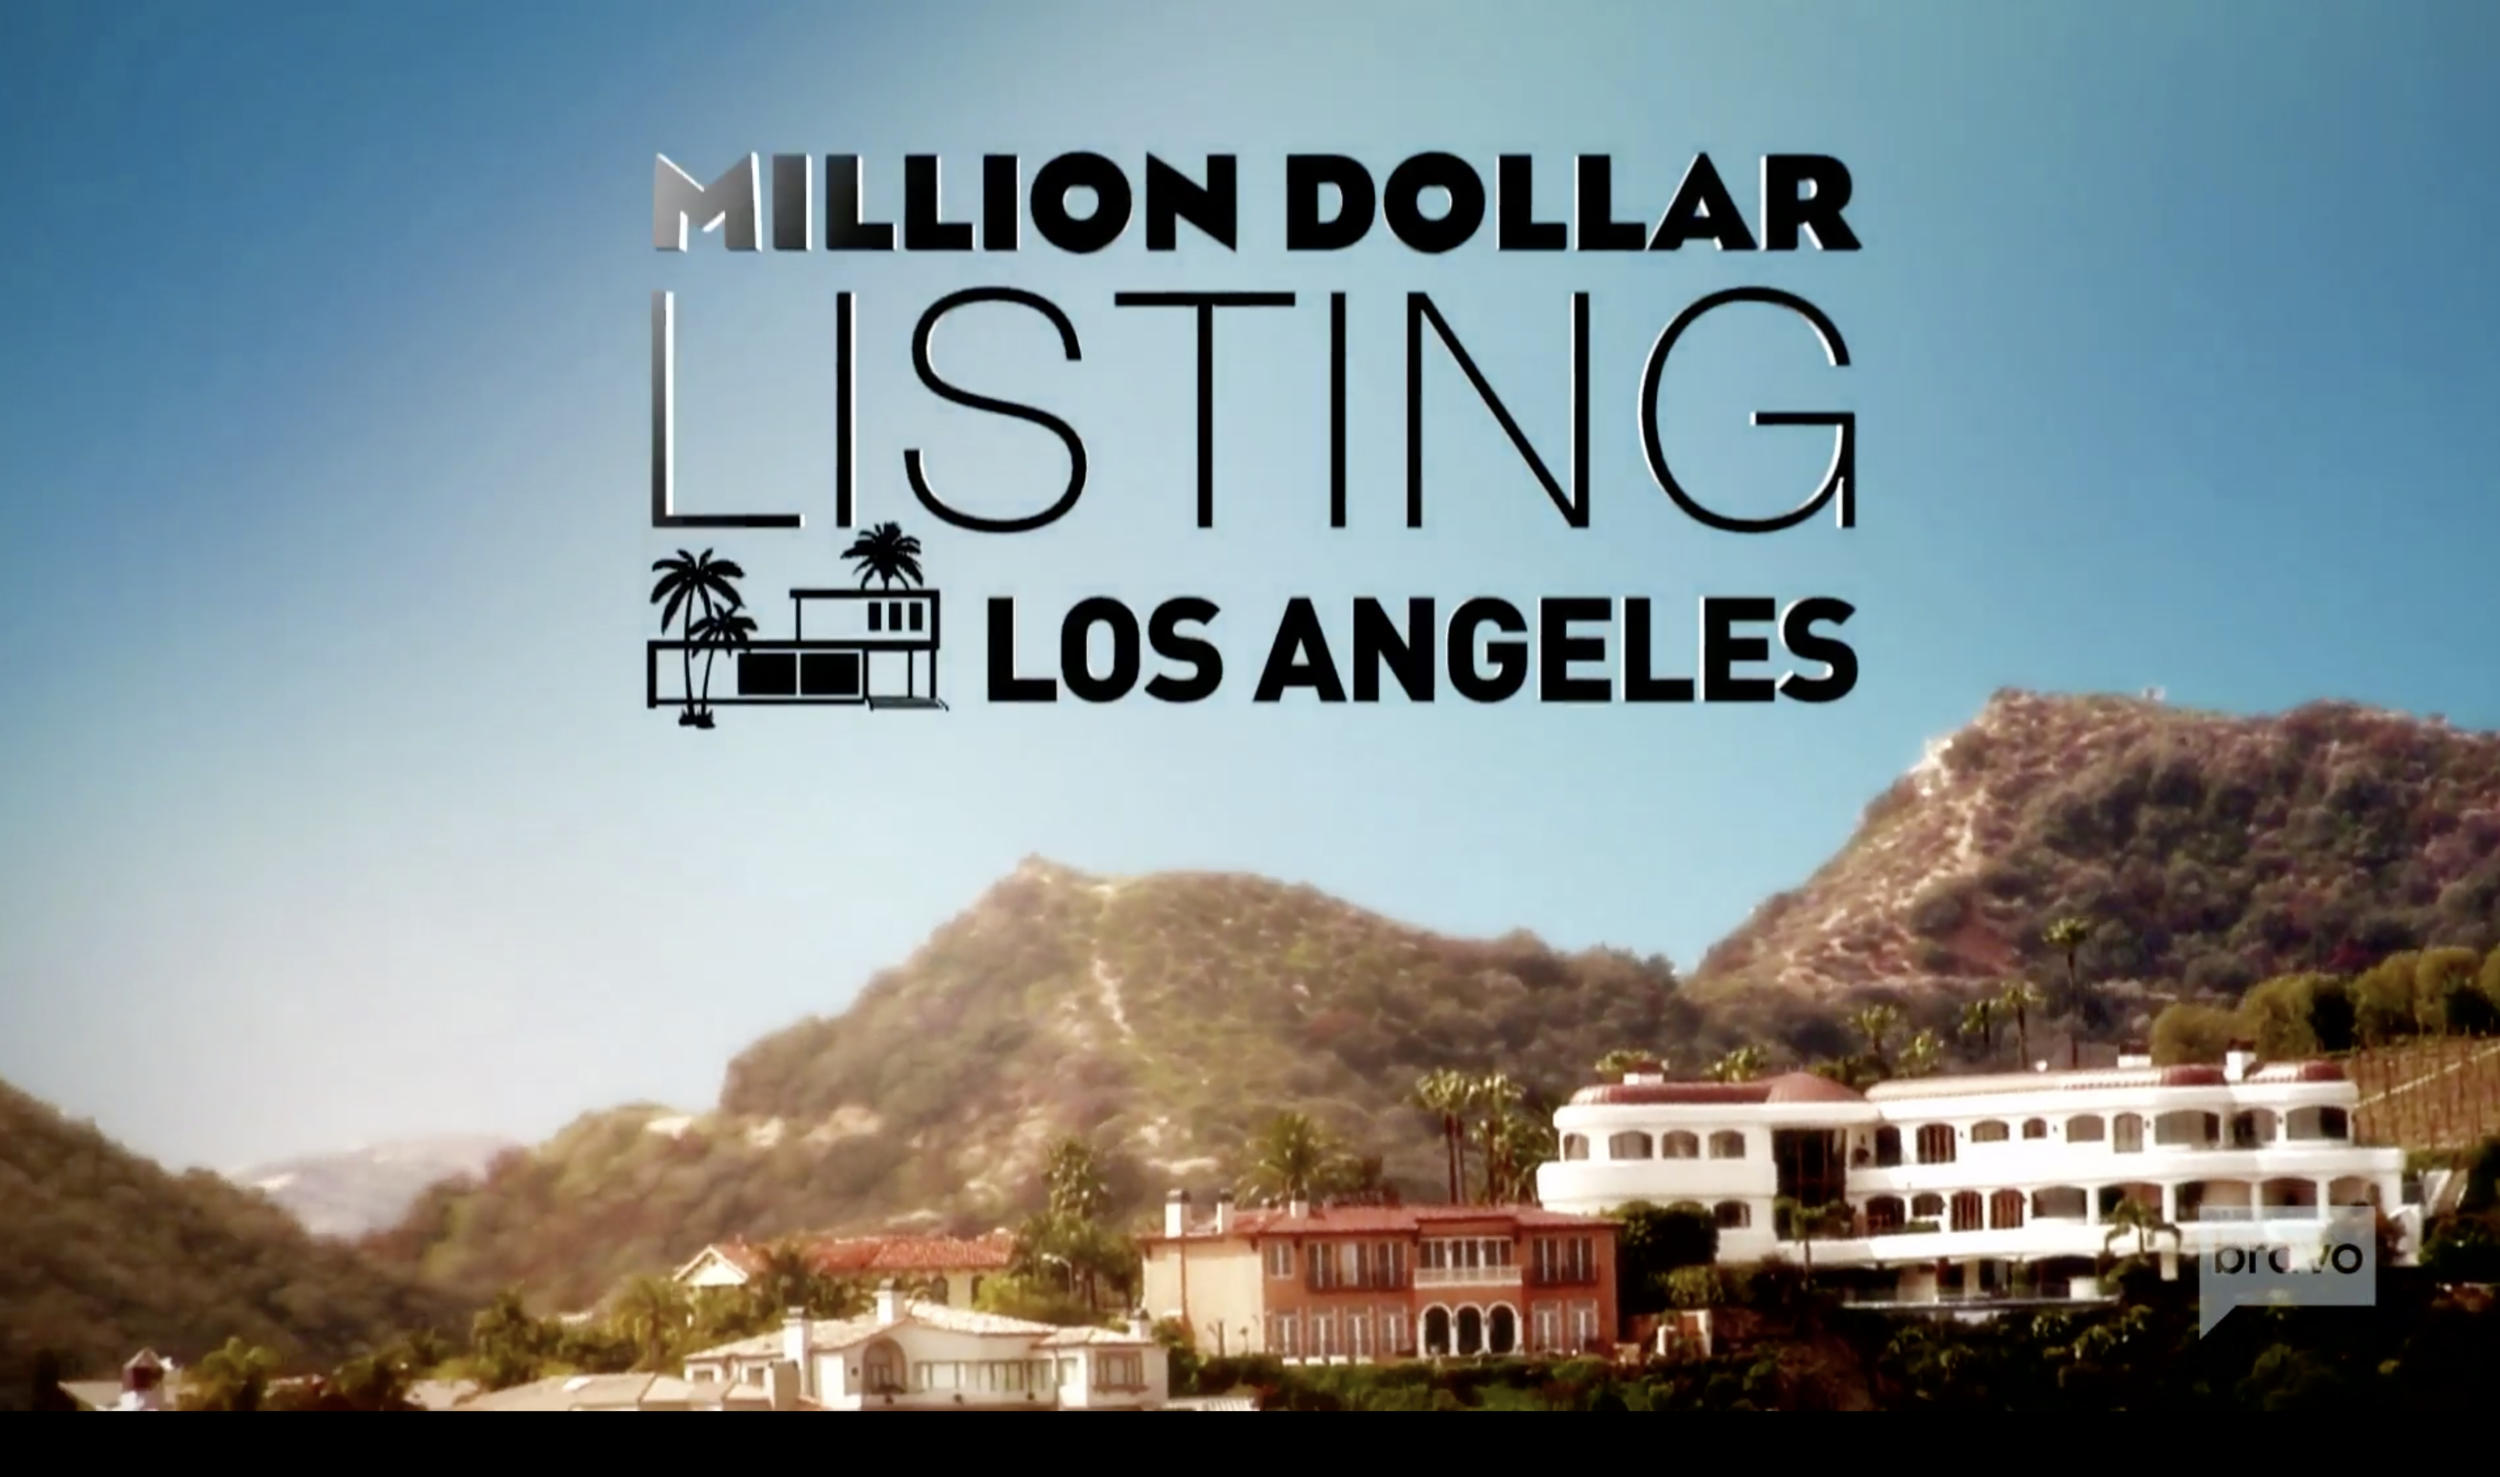 The 10th season of MDLLA launches November 2nd, 2017.